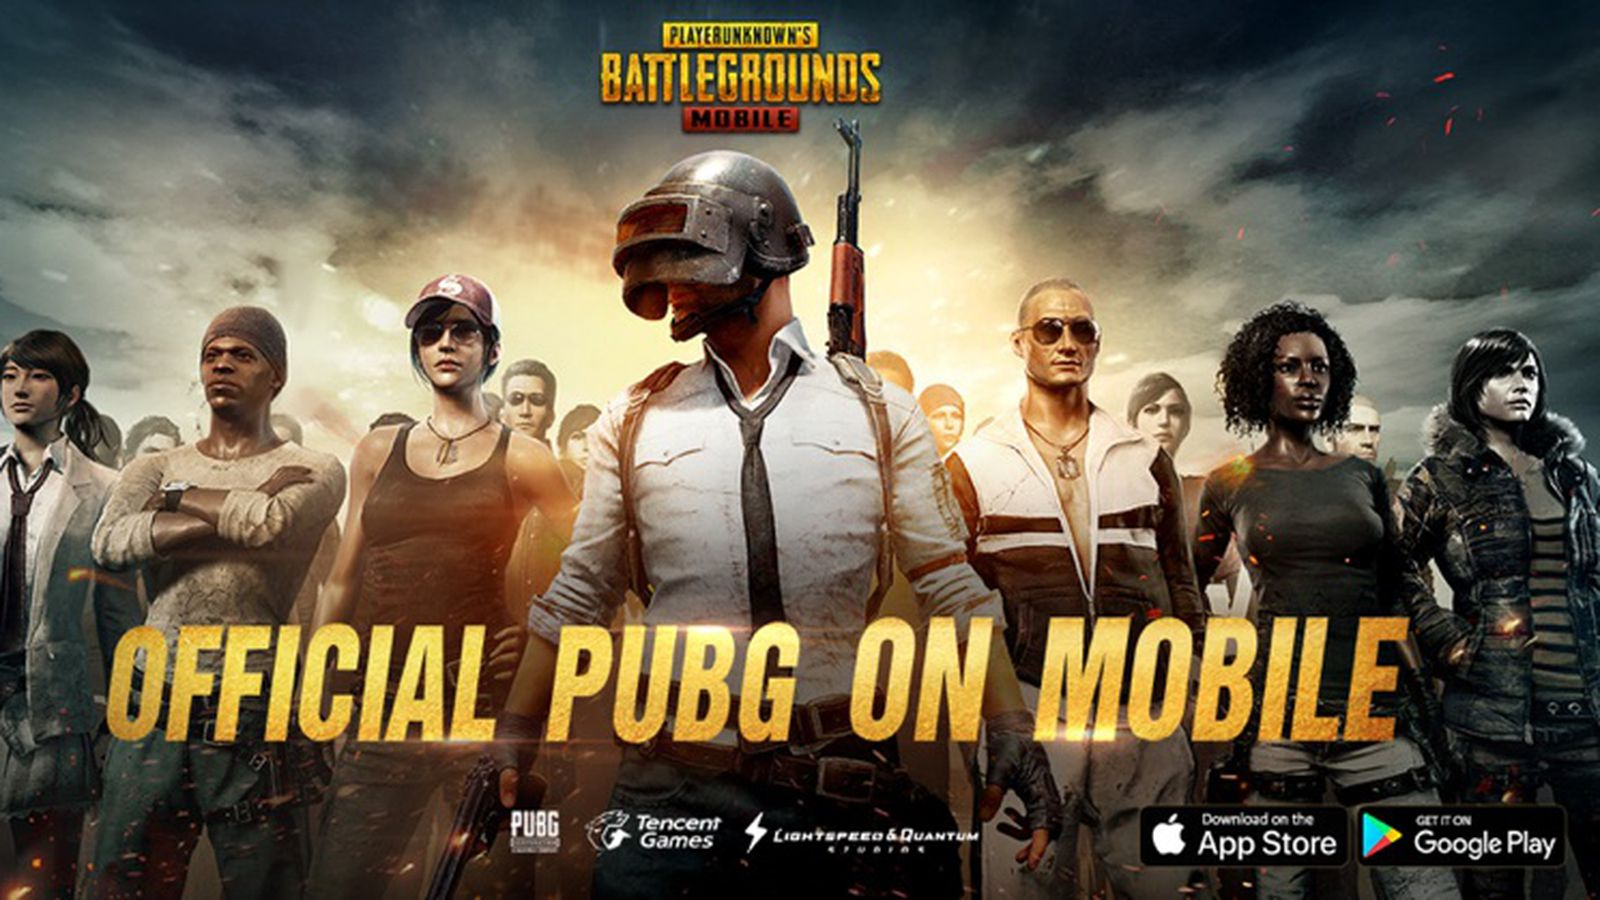 Official Pubg Mobile Game Now Available From Ios App Store In The